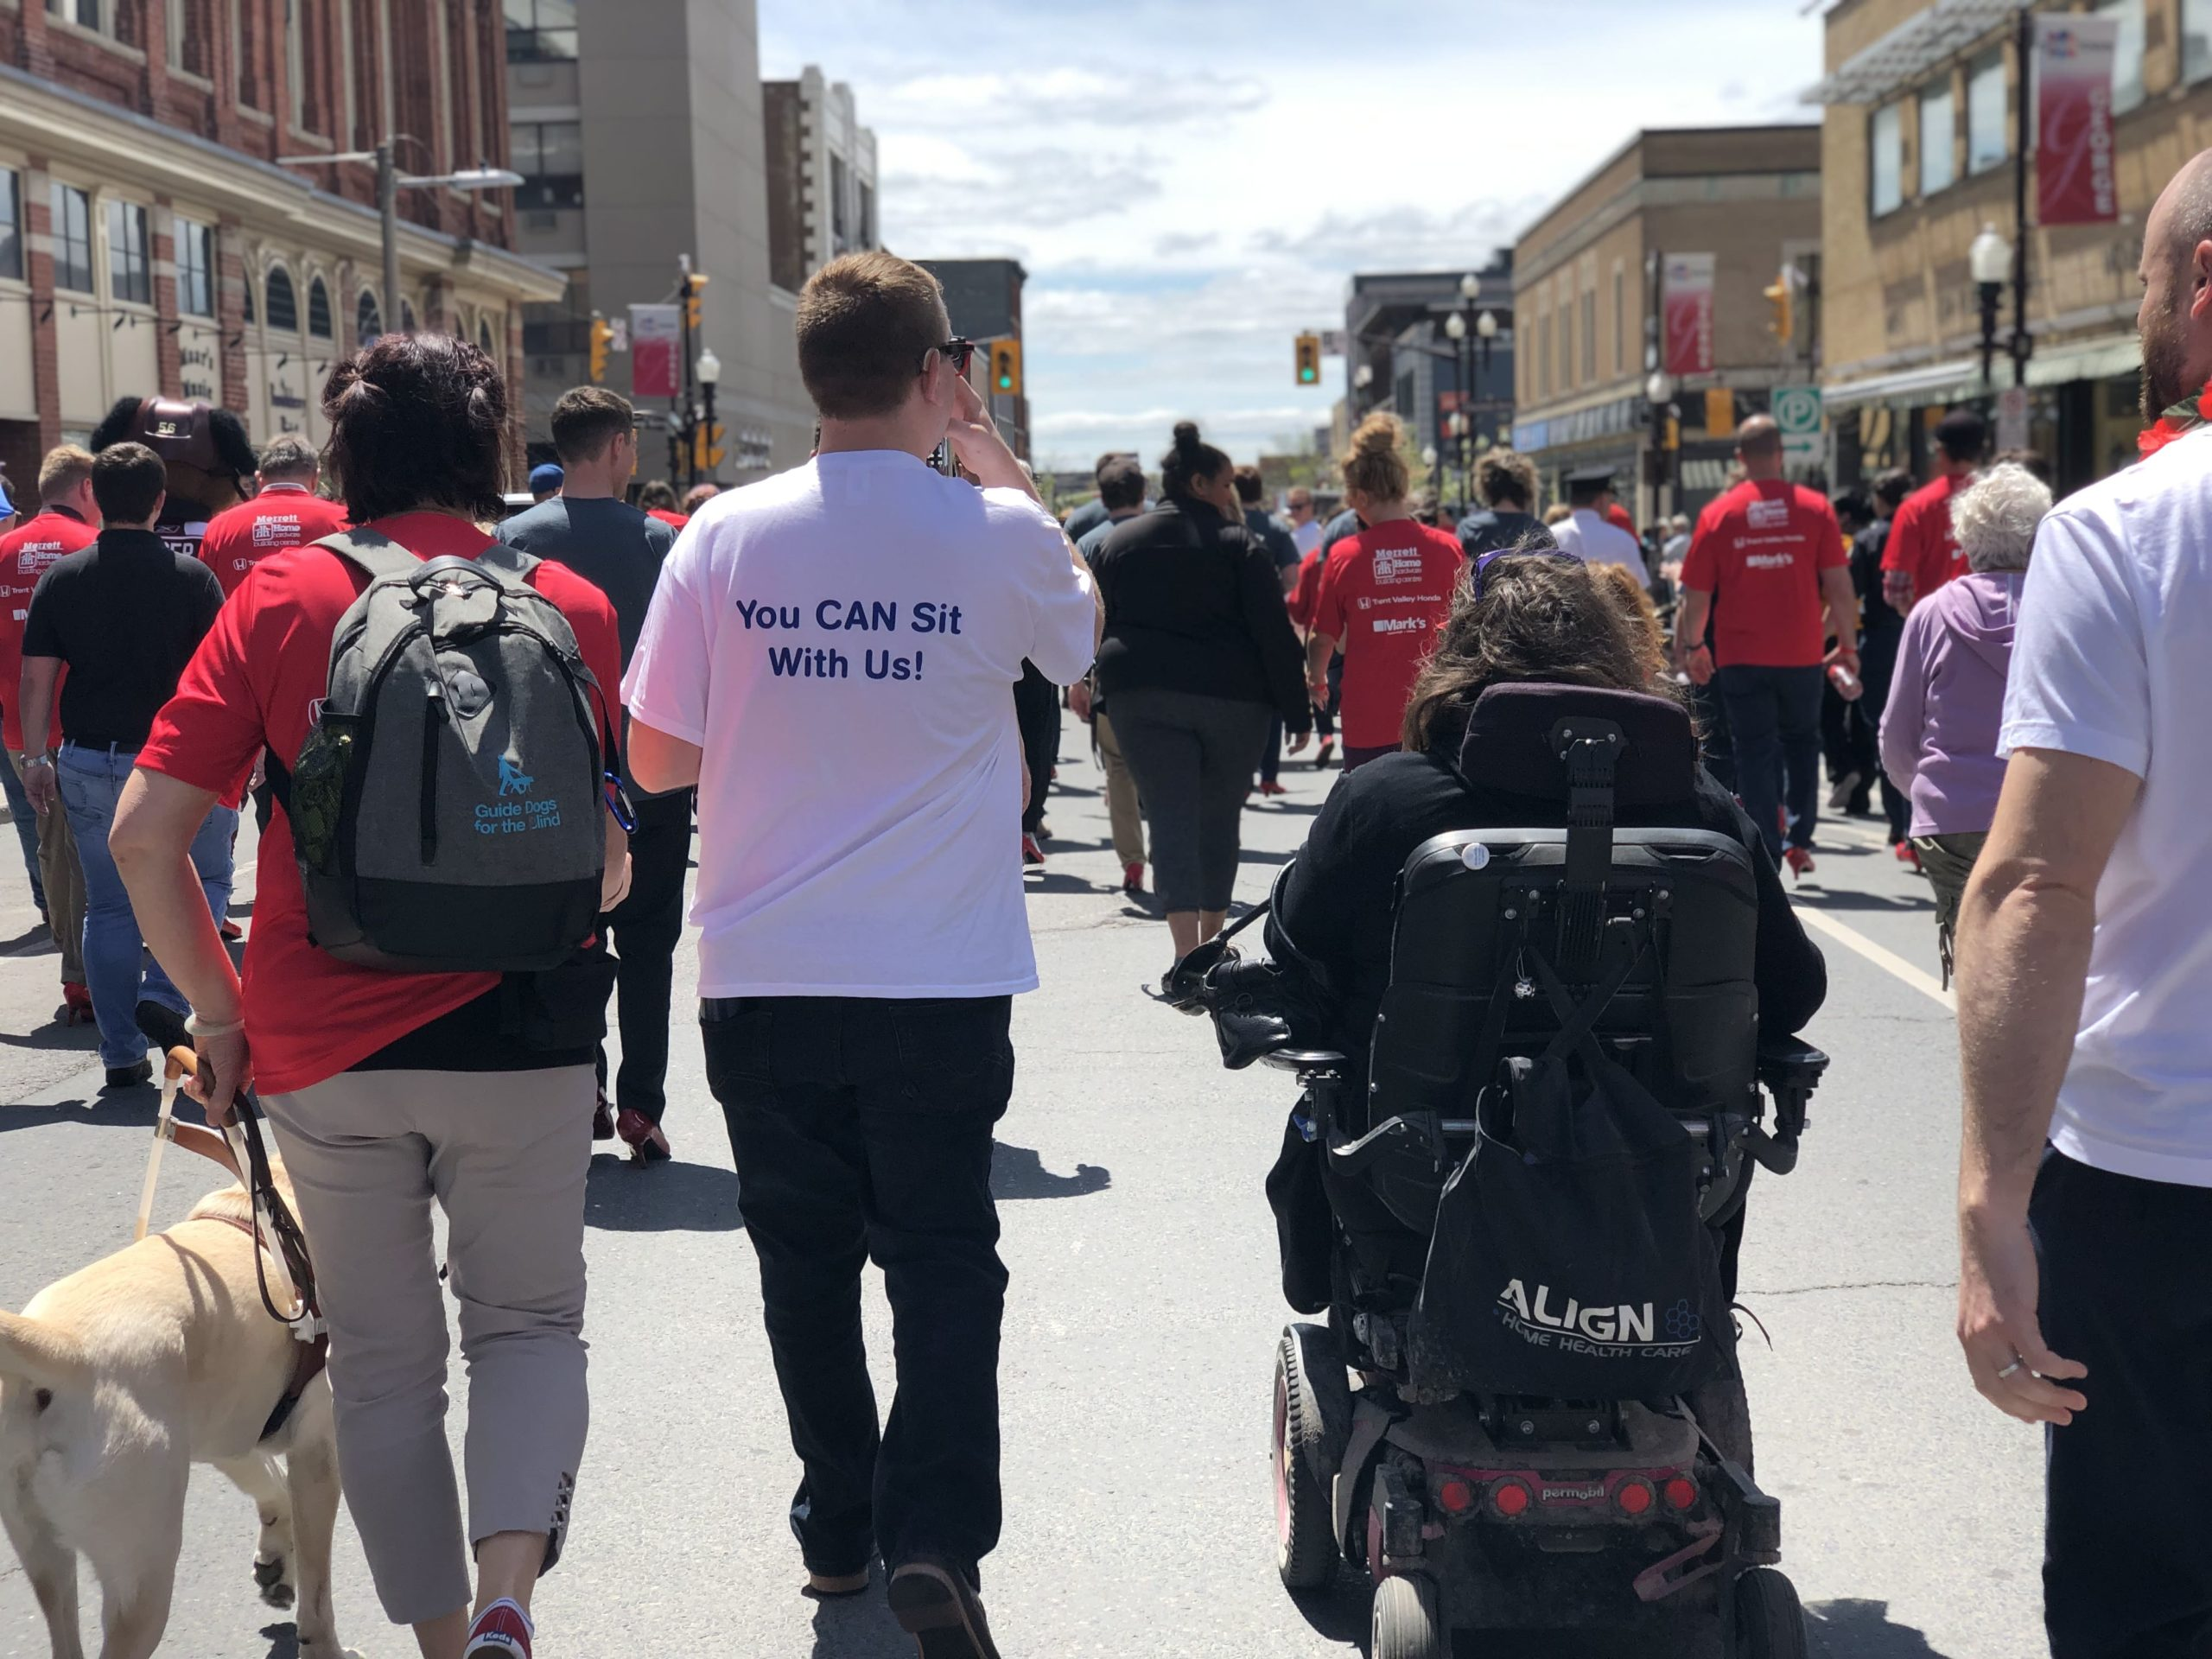 Image featuring the backs of adult individuals moving together down a street. One individual can be seen walking with a guide dog and another in a motorized wheelchair.